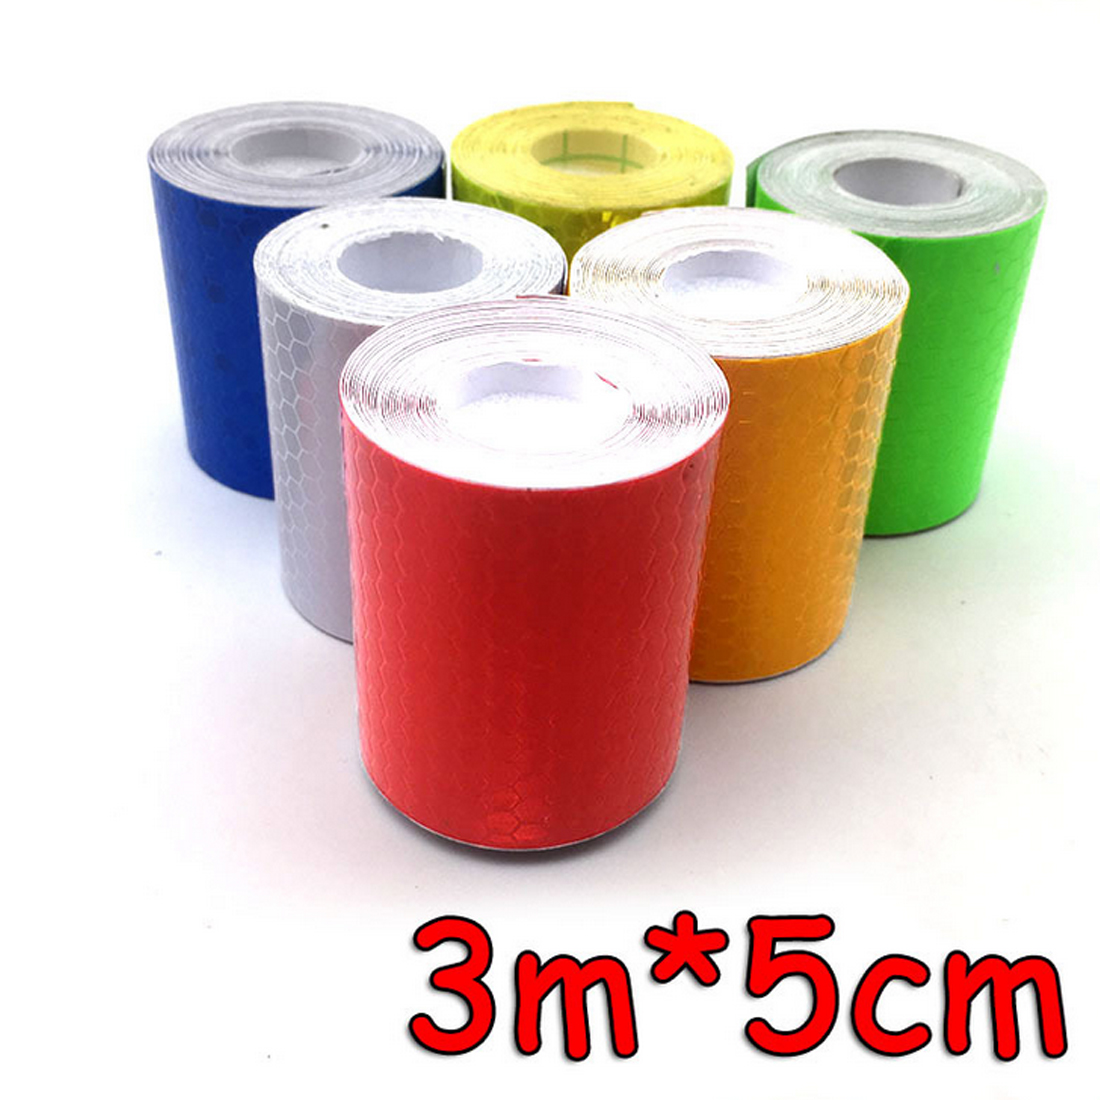 Bicycle Accessories 5cmx3m Reflective Bicycle Stickers Adhesive Tape For Bike Safety Reflective Bike Stickers